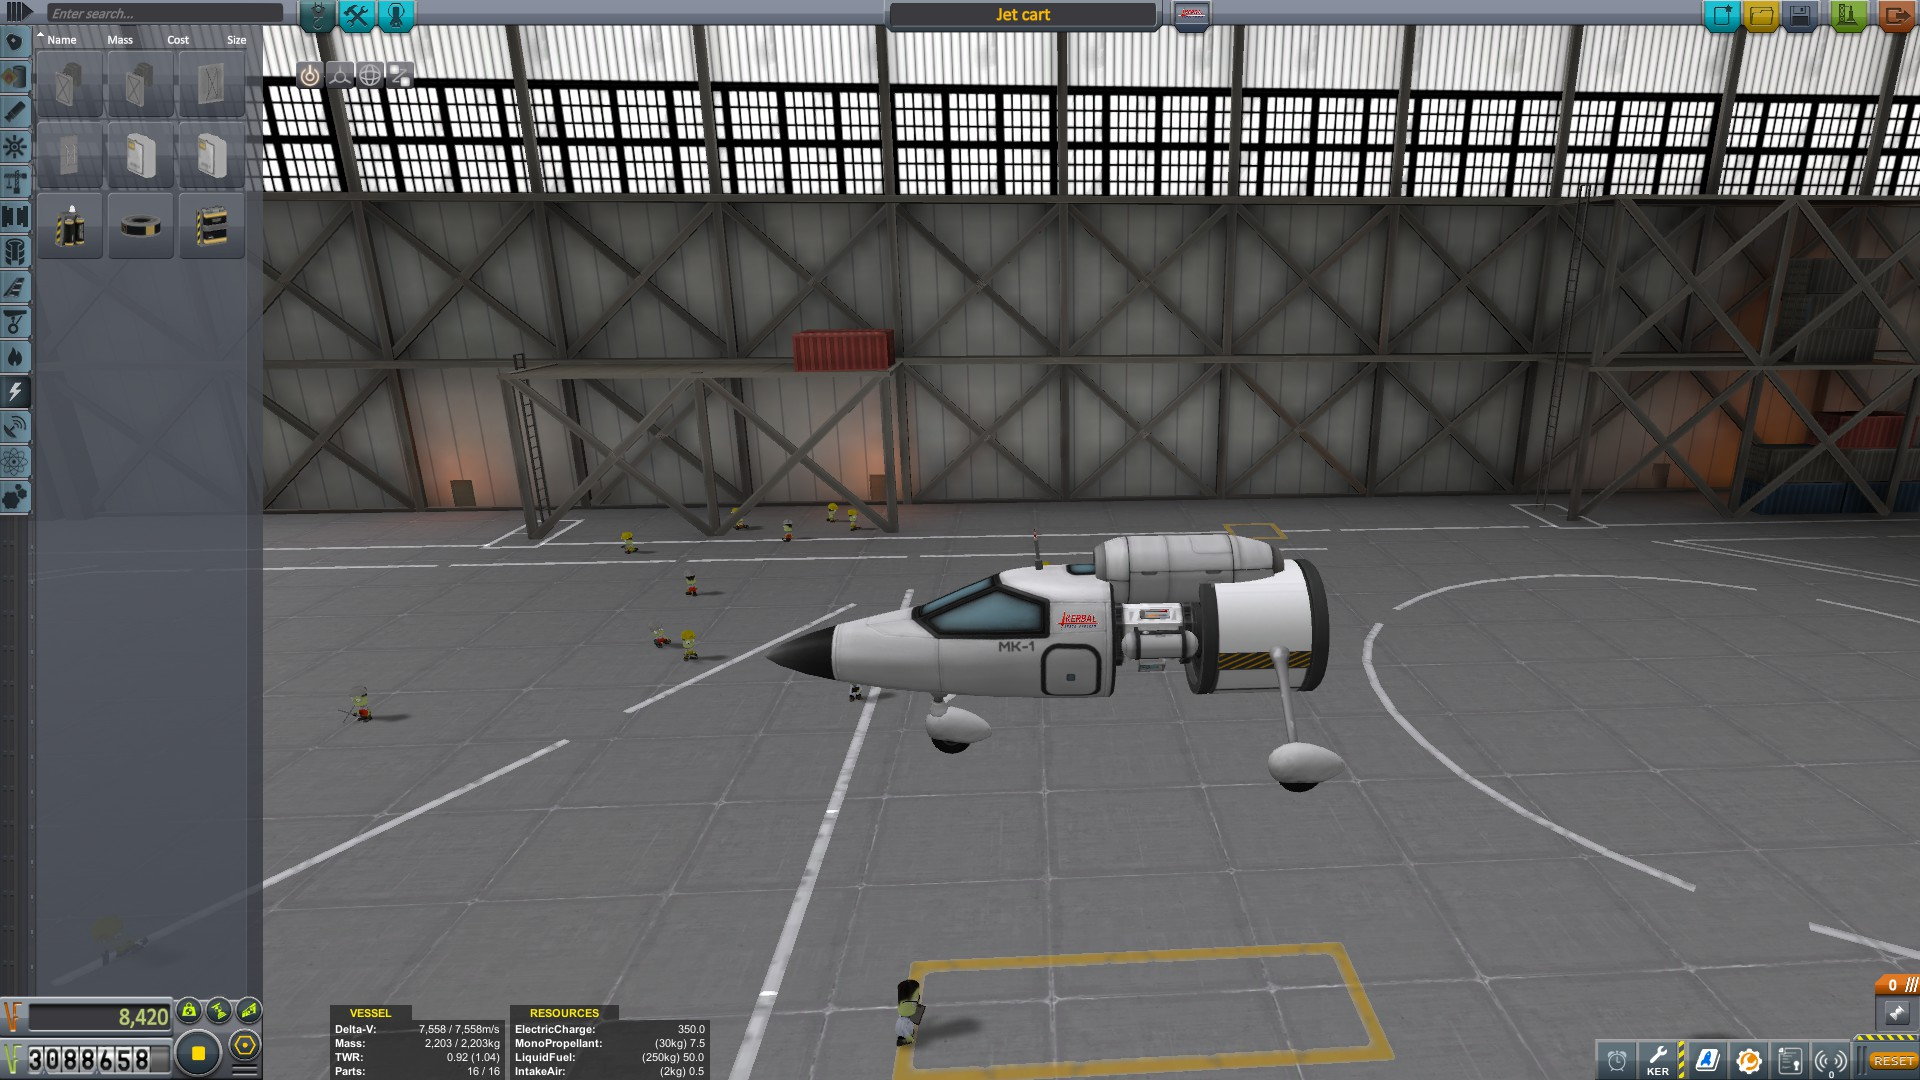 Any fast way to progress in career mode? :: Kerbal Space